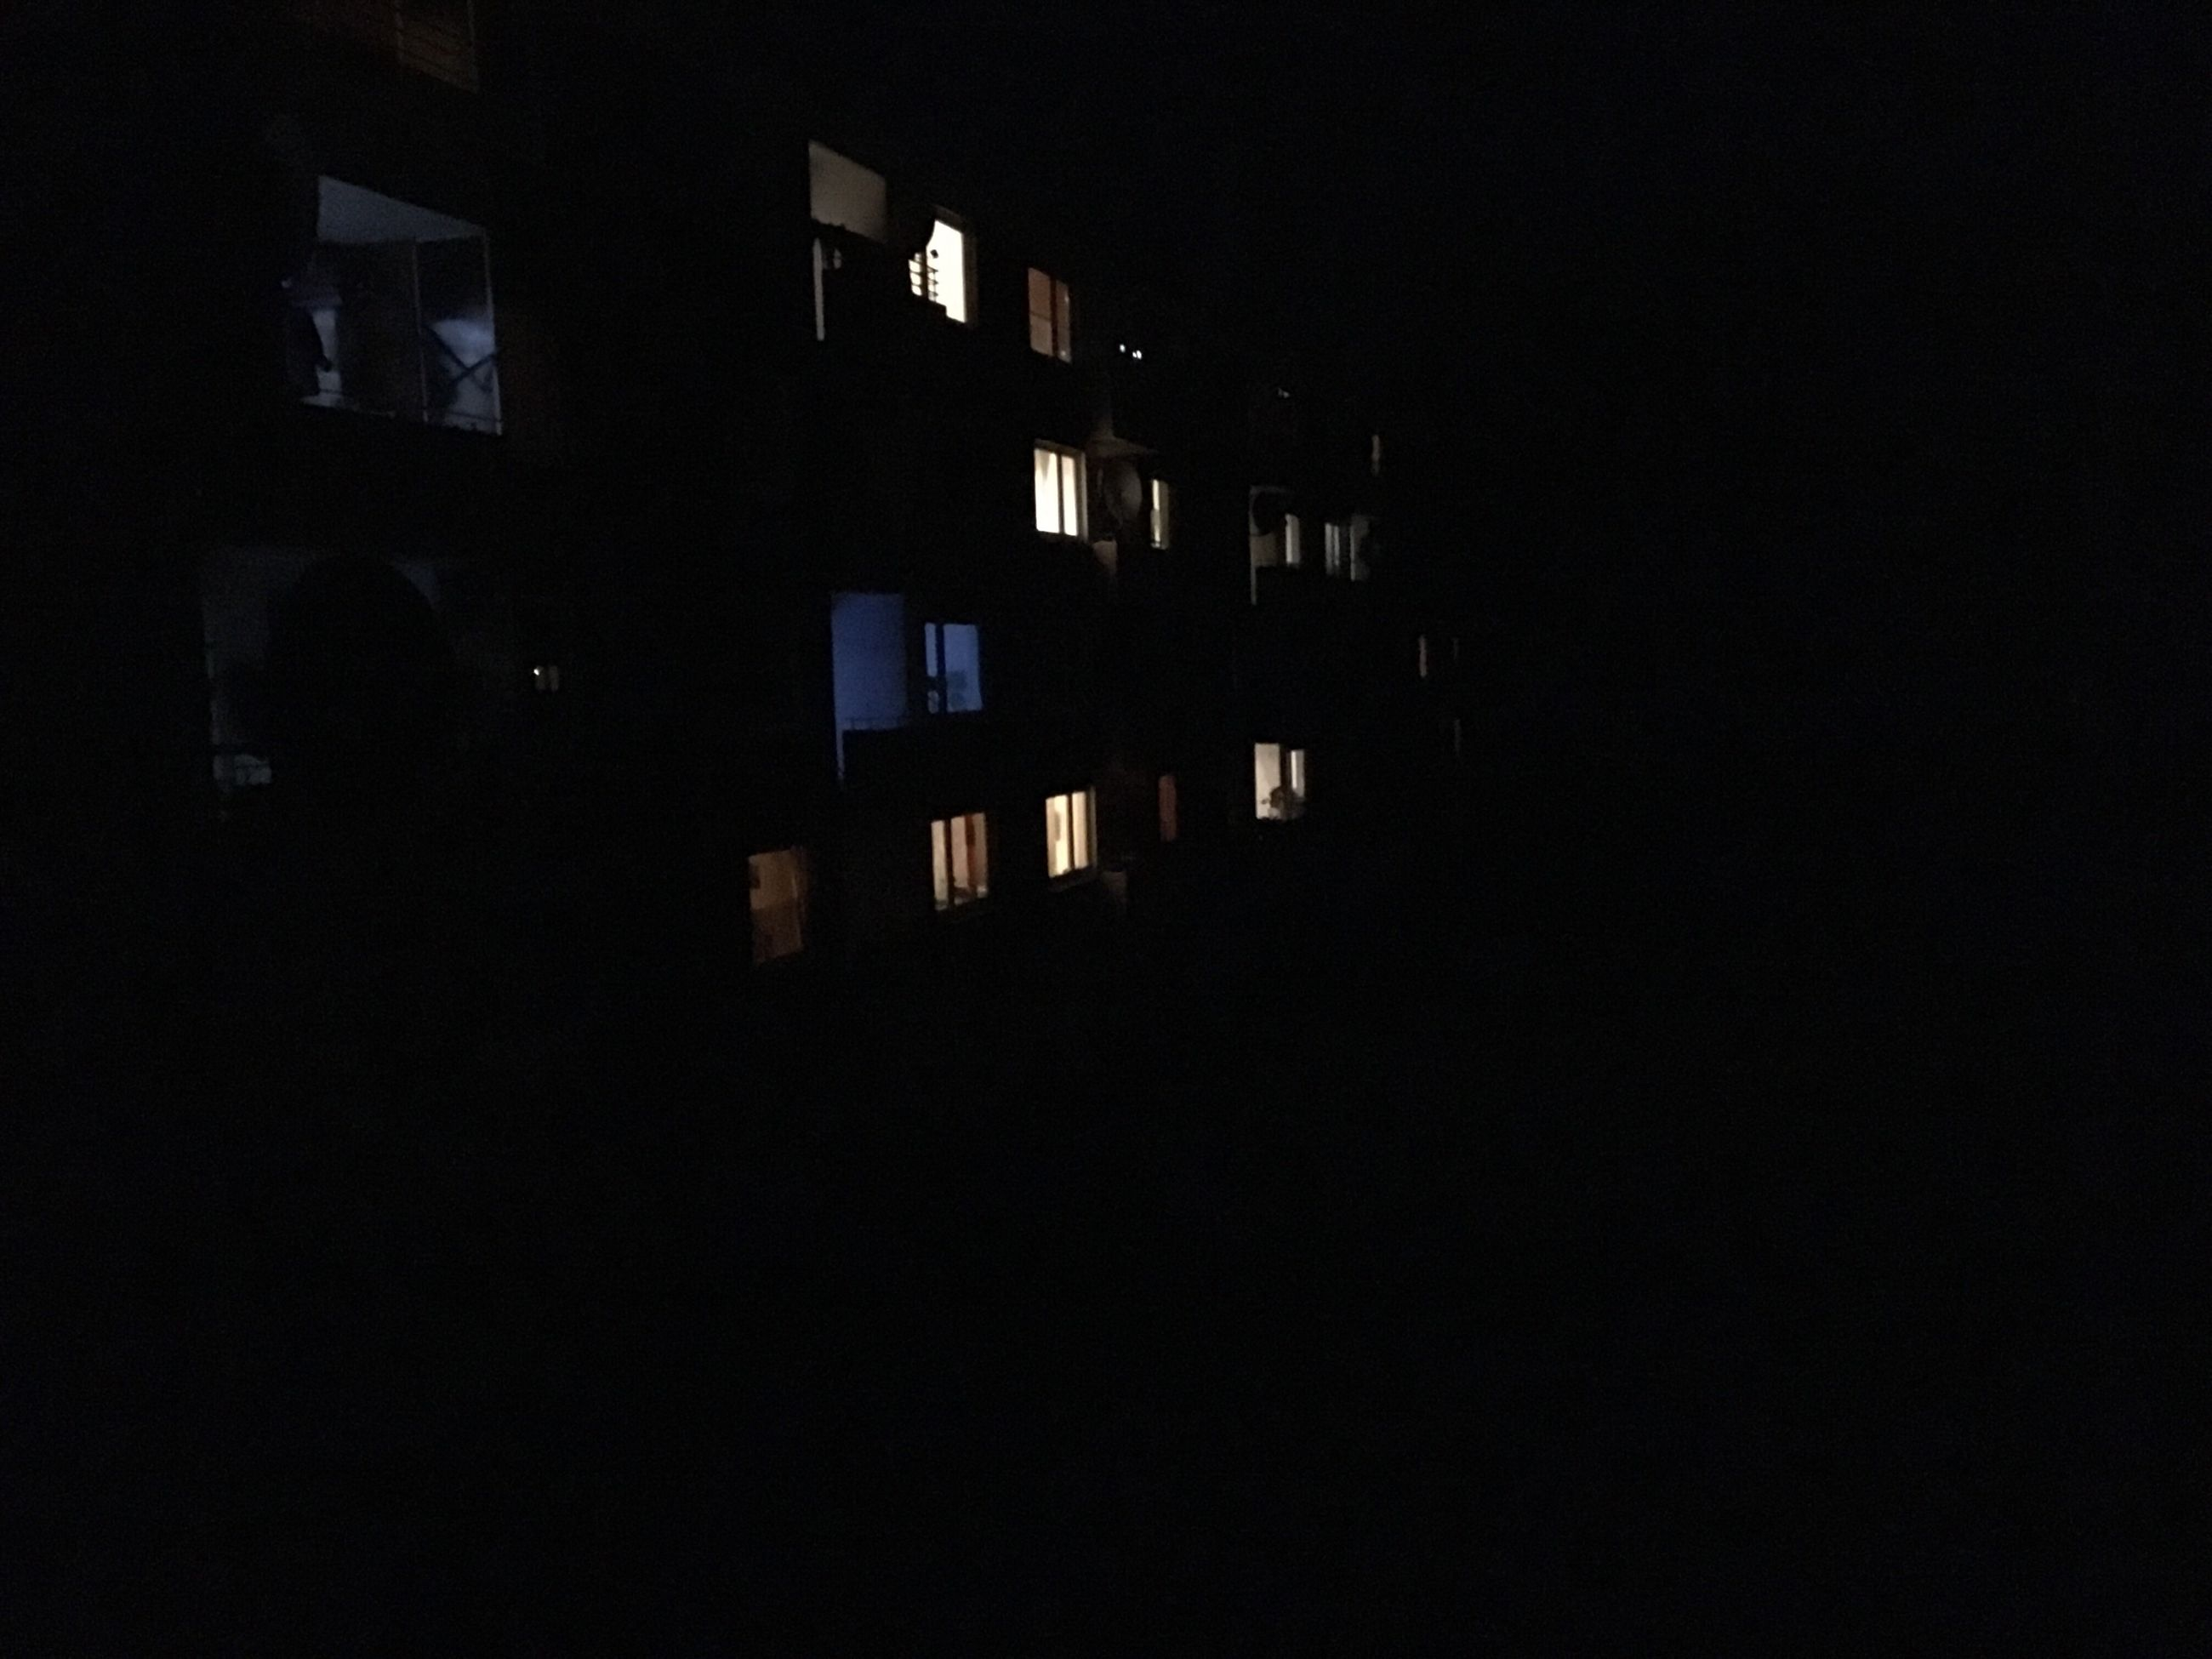 architecture, built structure, building exterior, night, dark, illuminated, window, residential structure, building, residential building, copy space, house, city, no people, outdoors, low angle view, clear sky, apartment, silhouette, shadow